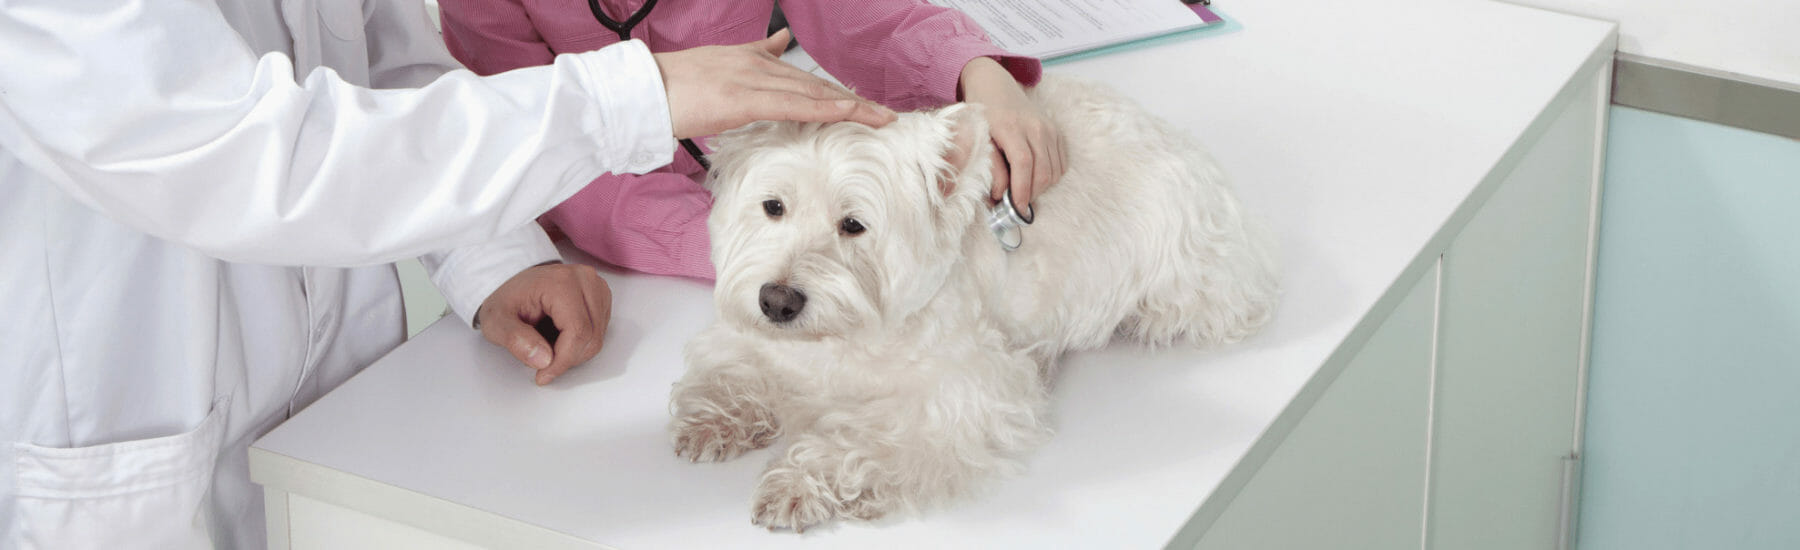 A dog being examined with a stethoscope